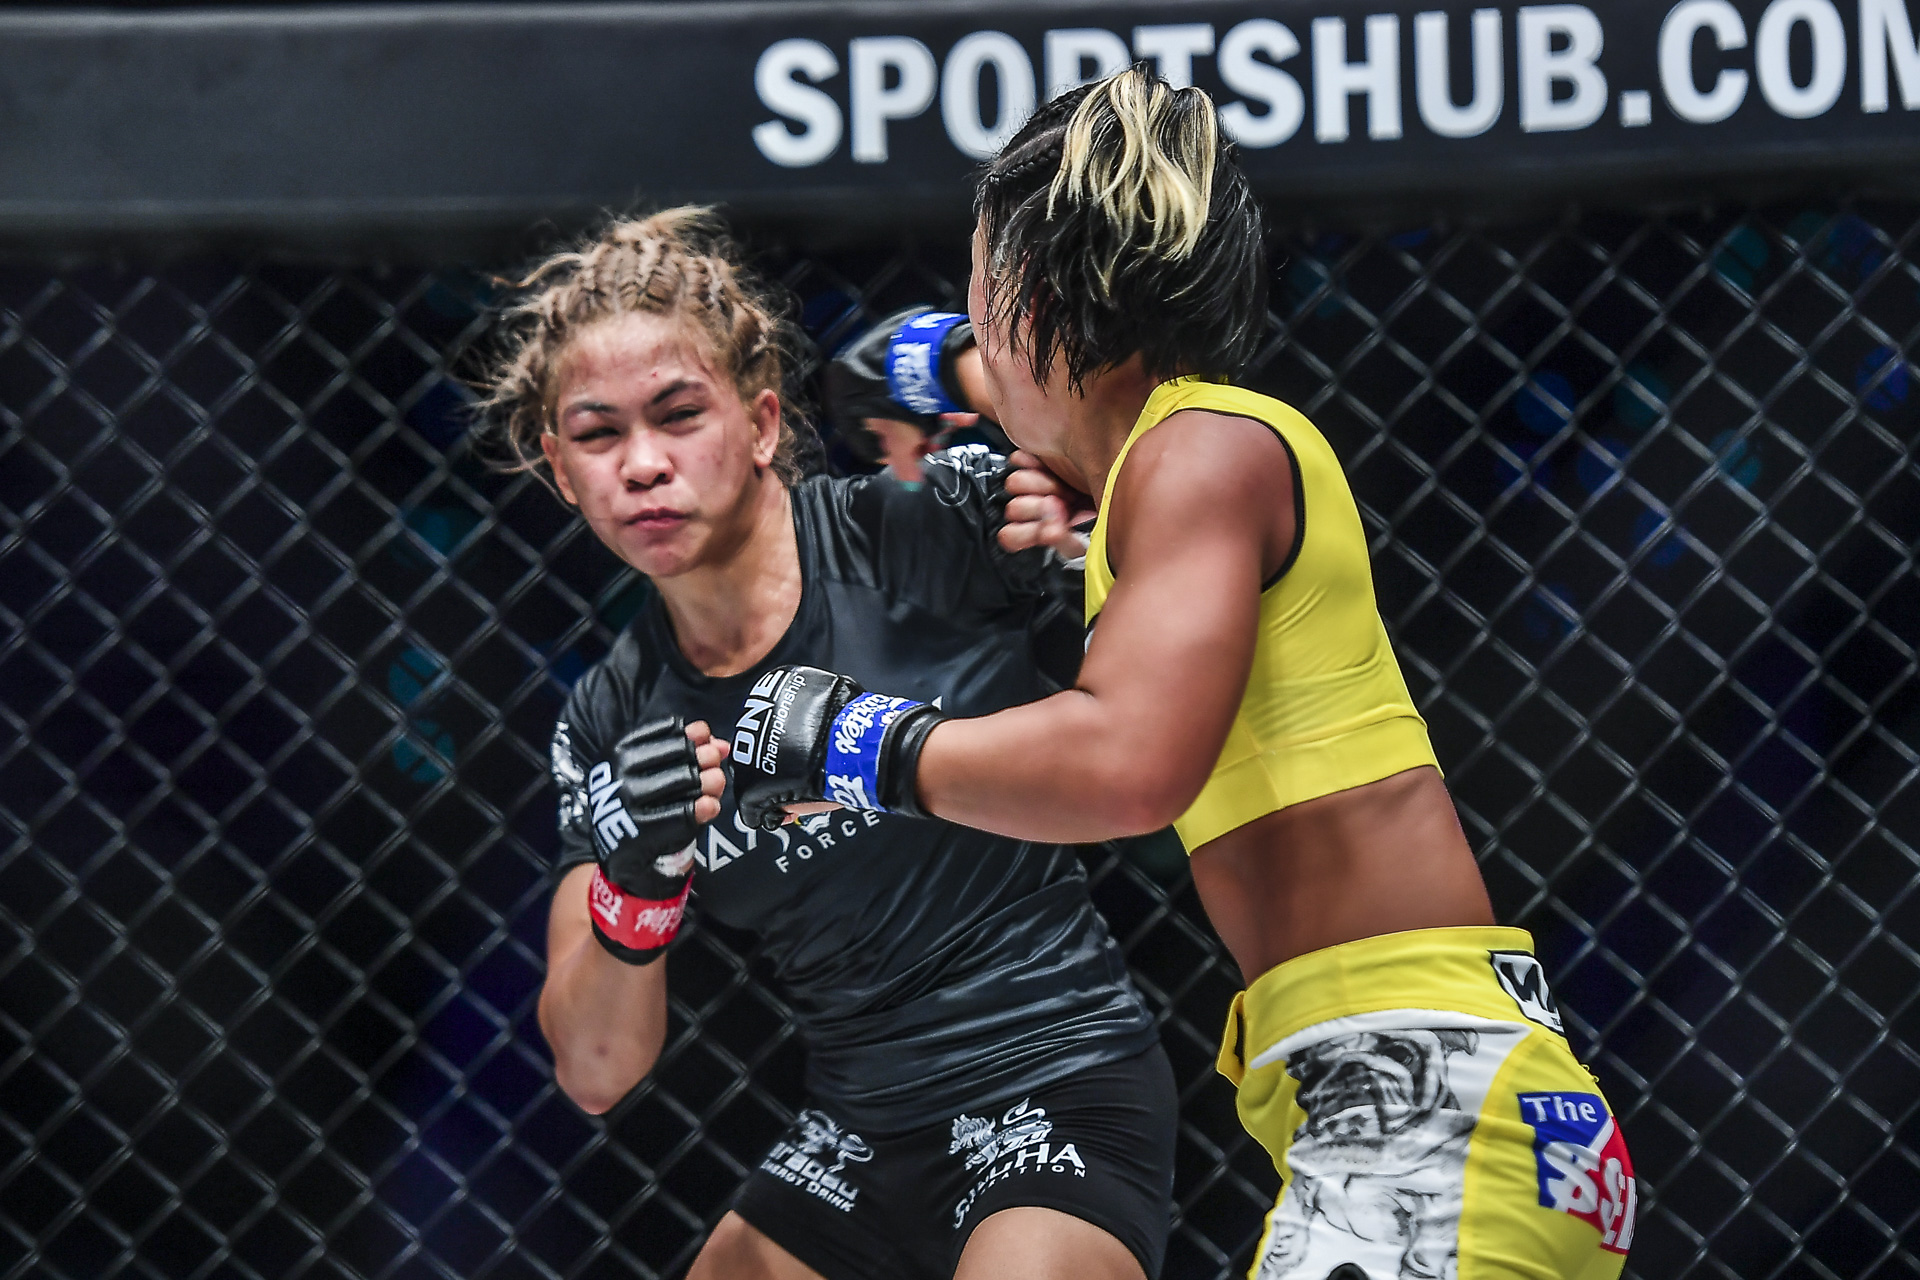 Pictures from the fight between Seo Hee Ham and Denice Zamboanga from ONE: EMPOWER